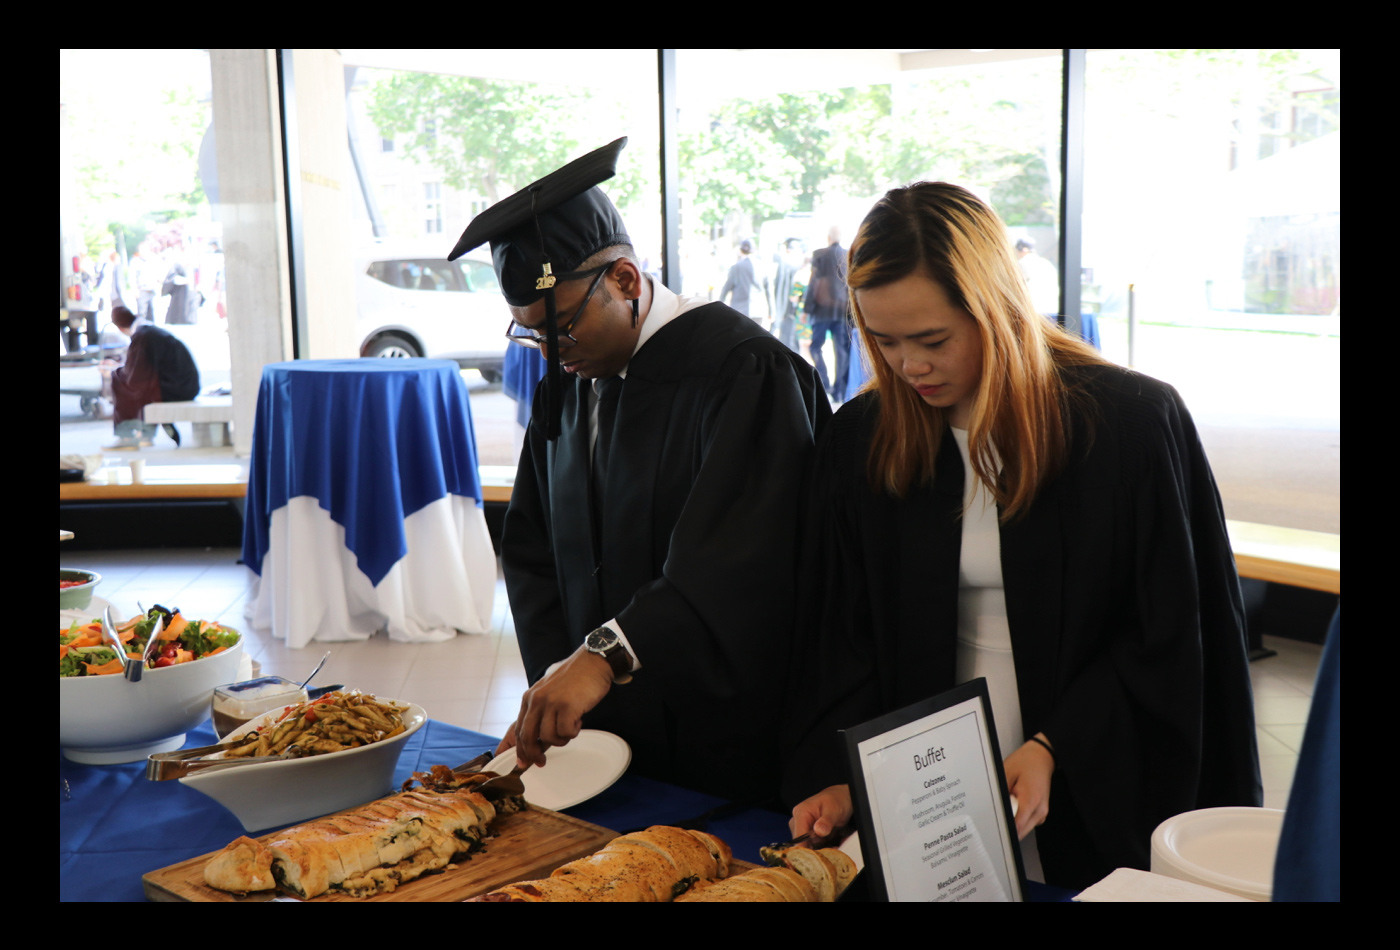 Two Chemistry graduates help themselves to a buffet.